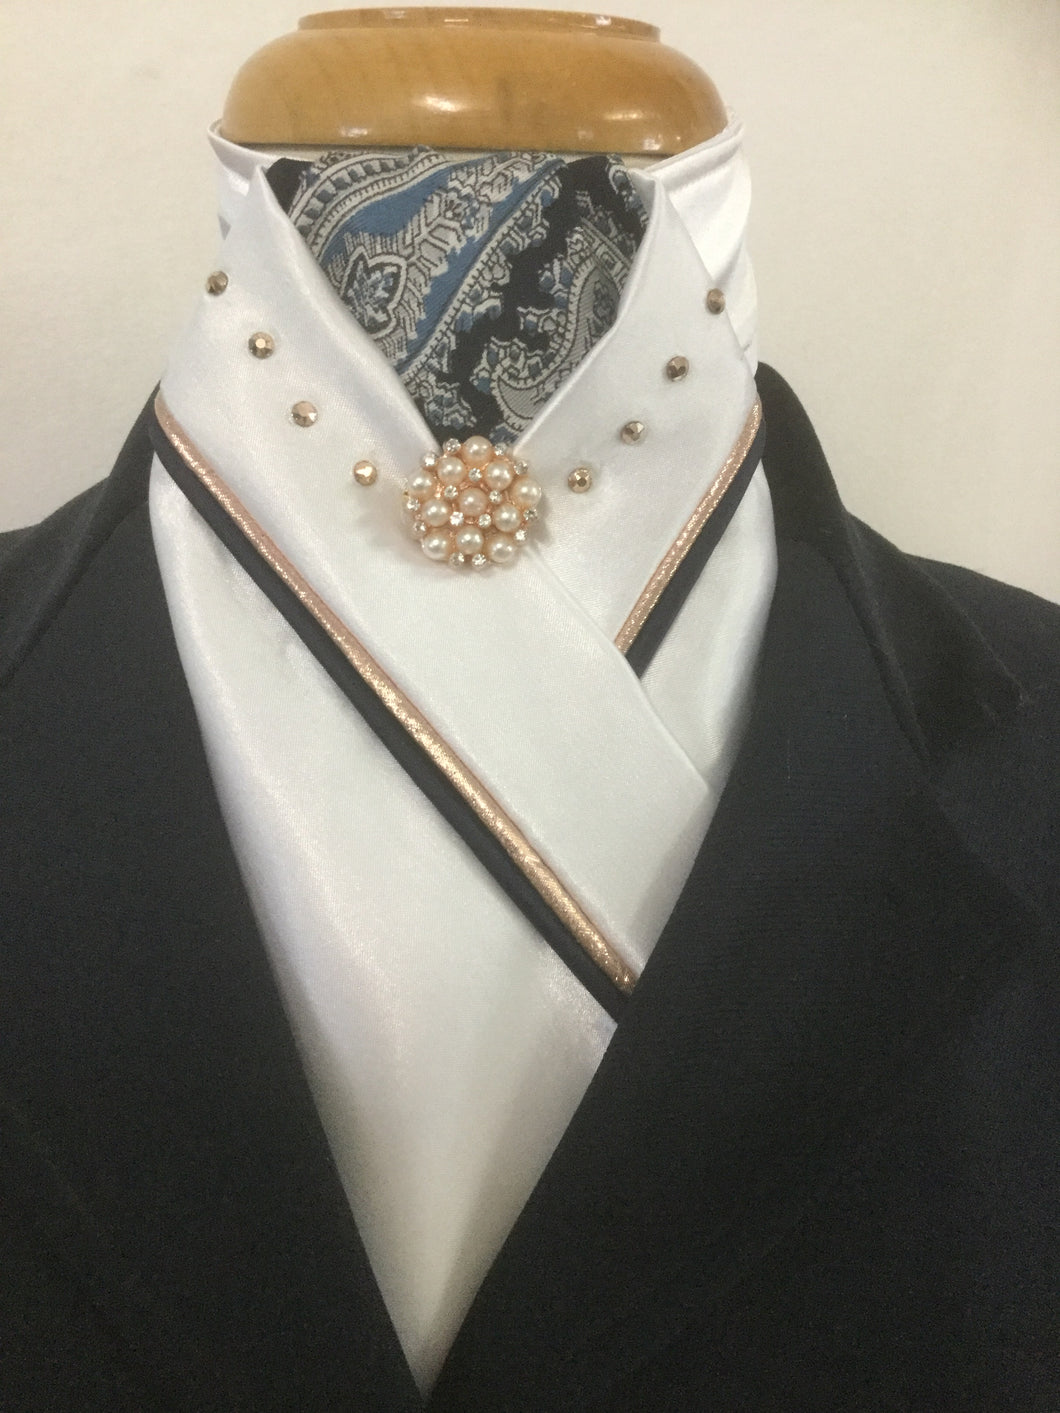 HHD White Satin Custom Stock Tie Navy Paisley & Rose Gold with Swarovski Elements